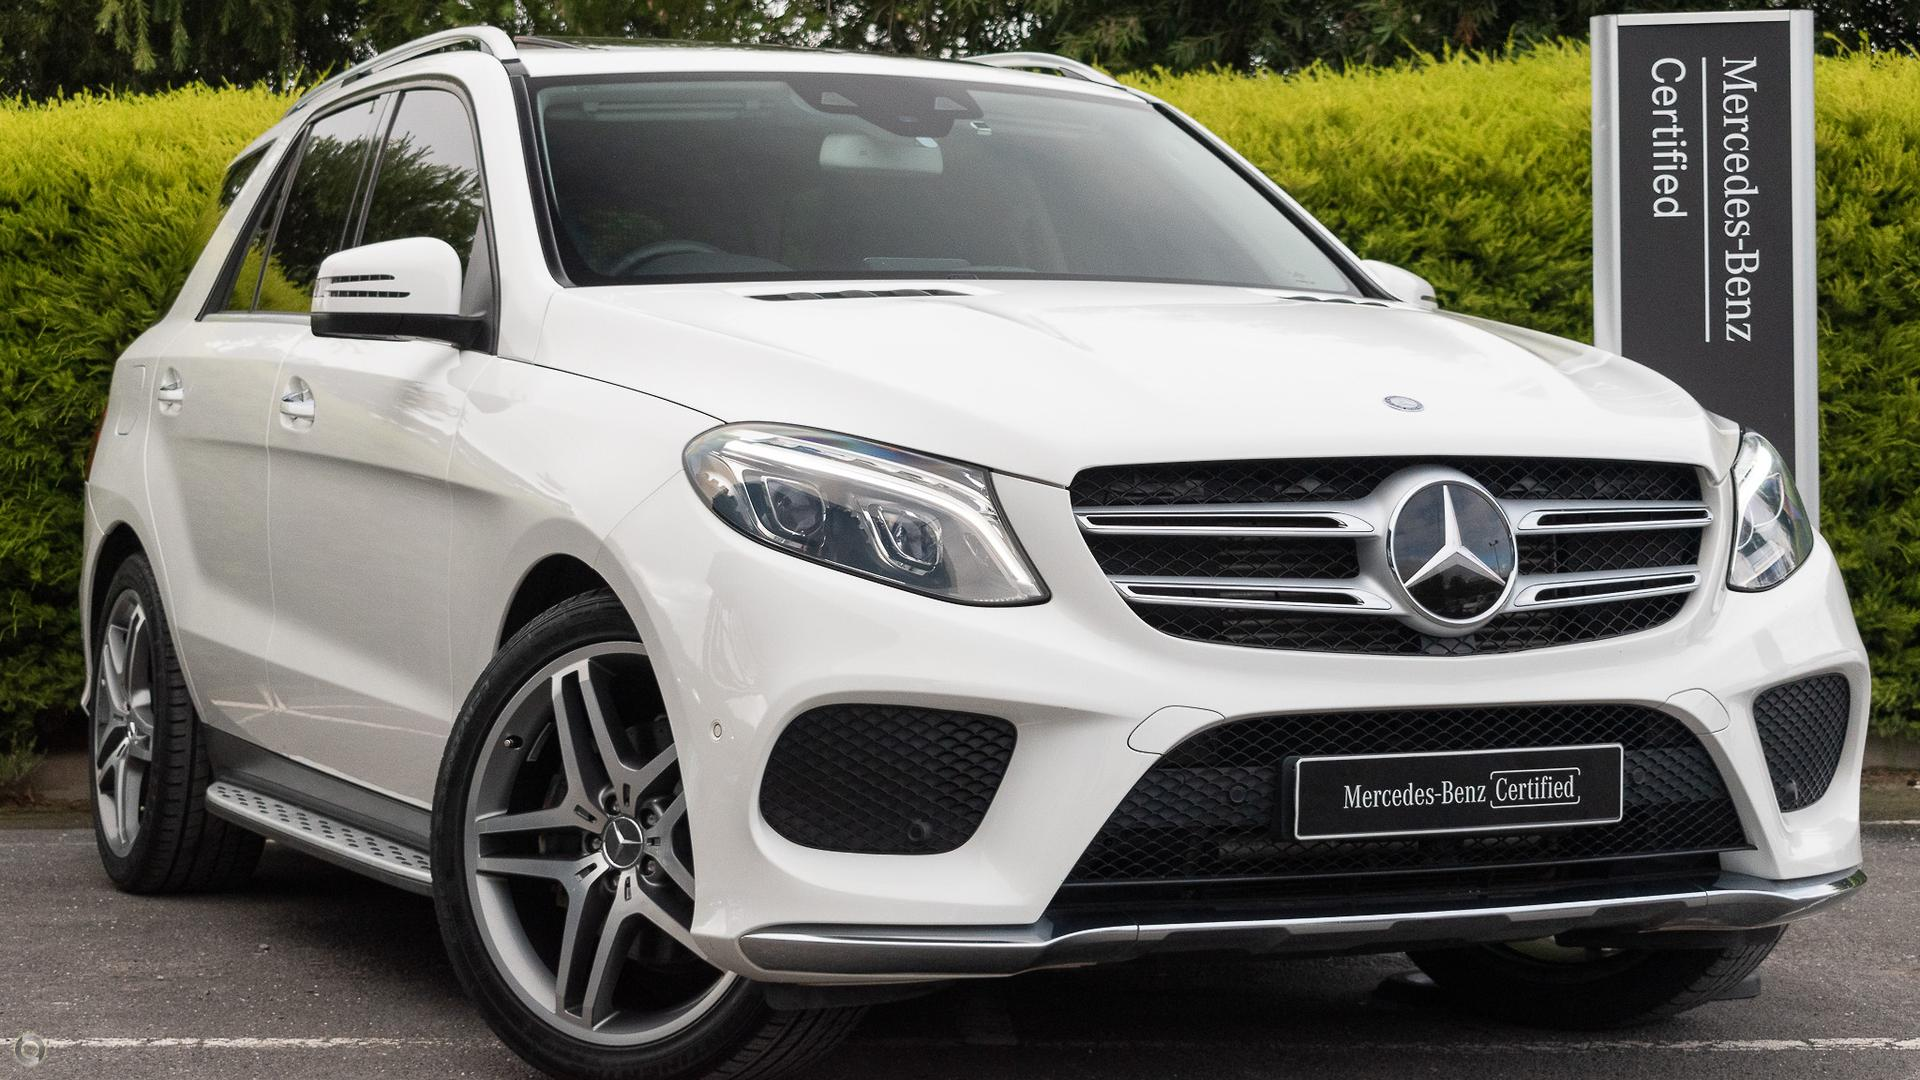 2015 Mercedes-Benz GLE 250 D Wagon